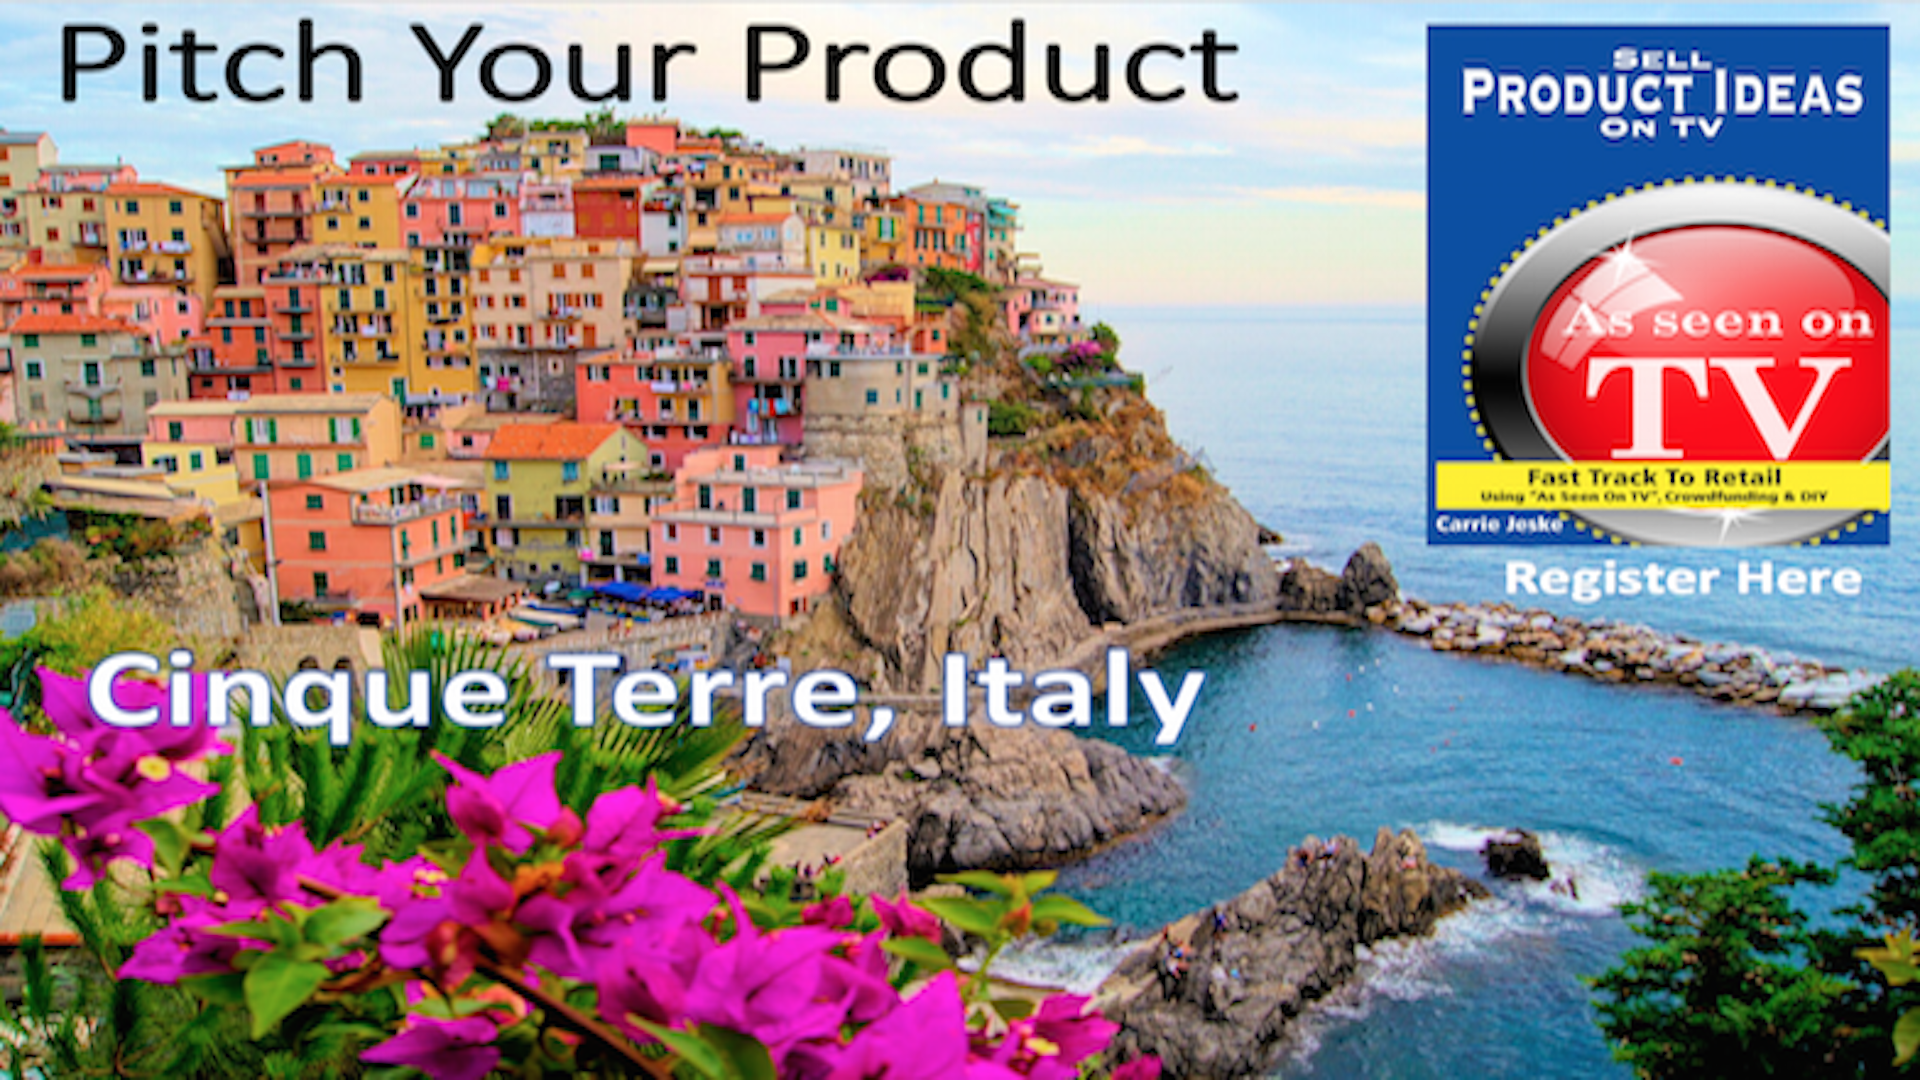 Cinque Terre Italy Pitch Product Idea Carrie Jeske